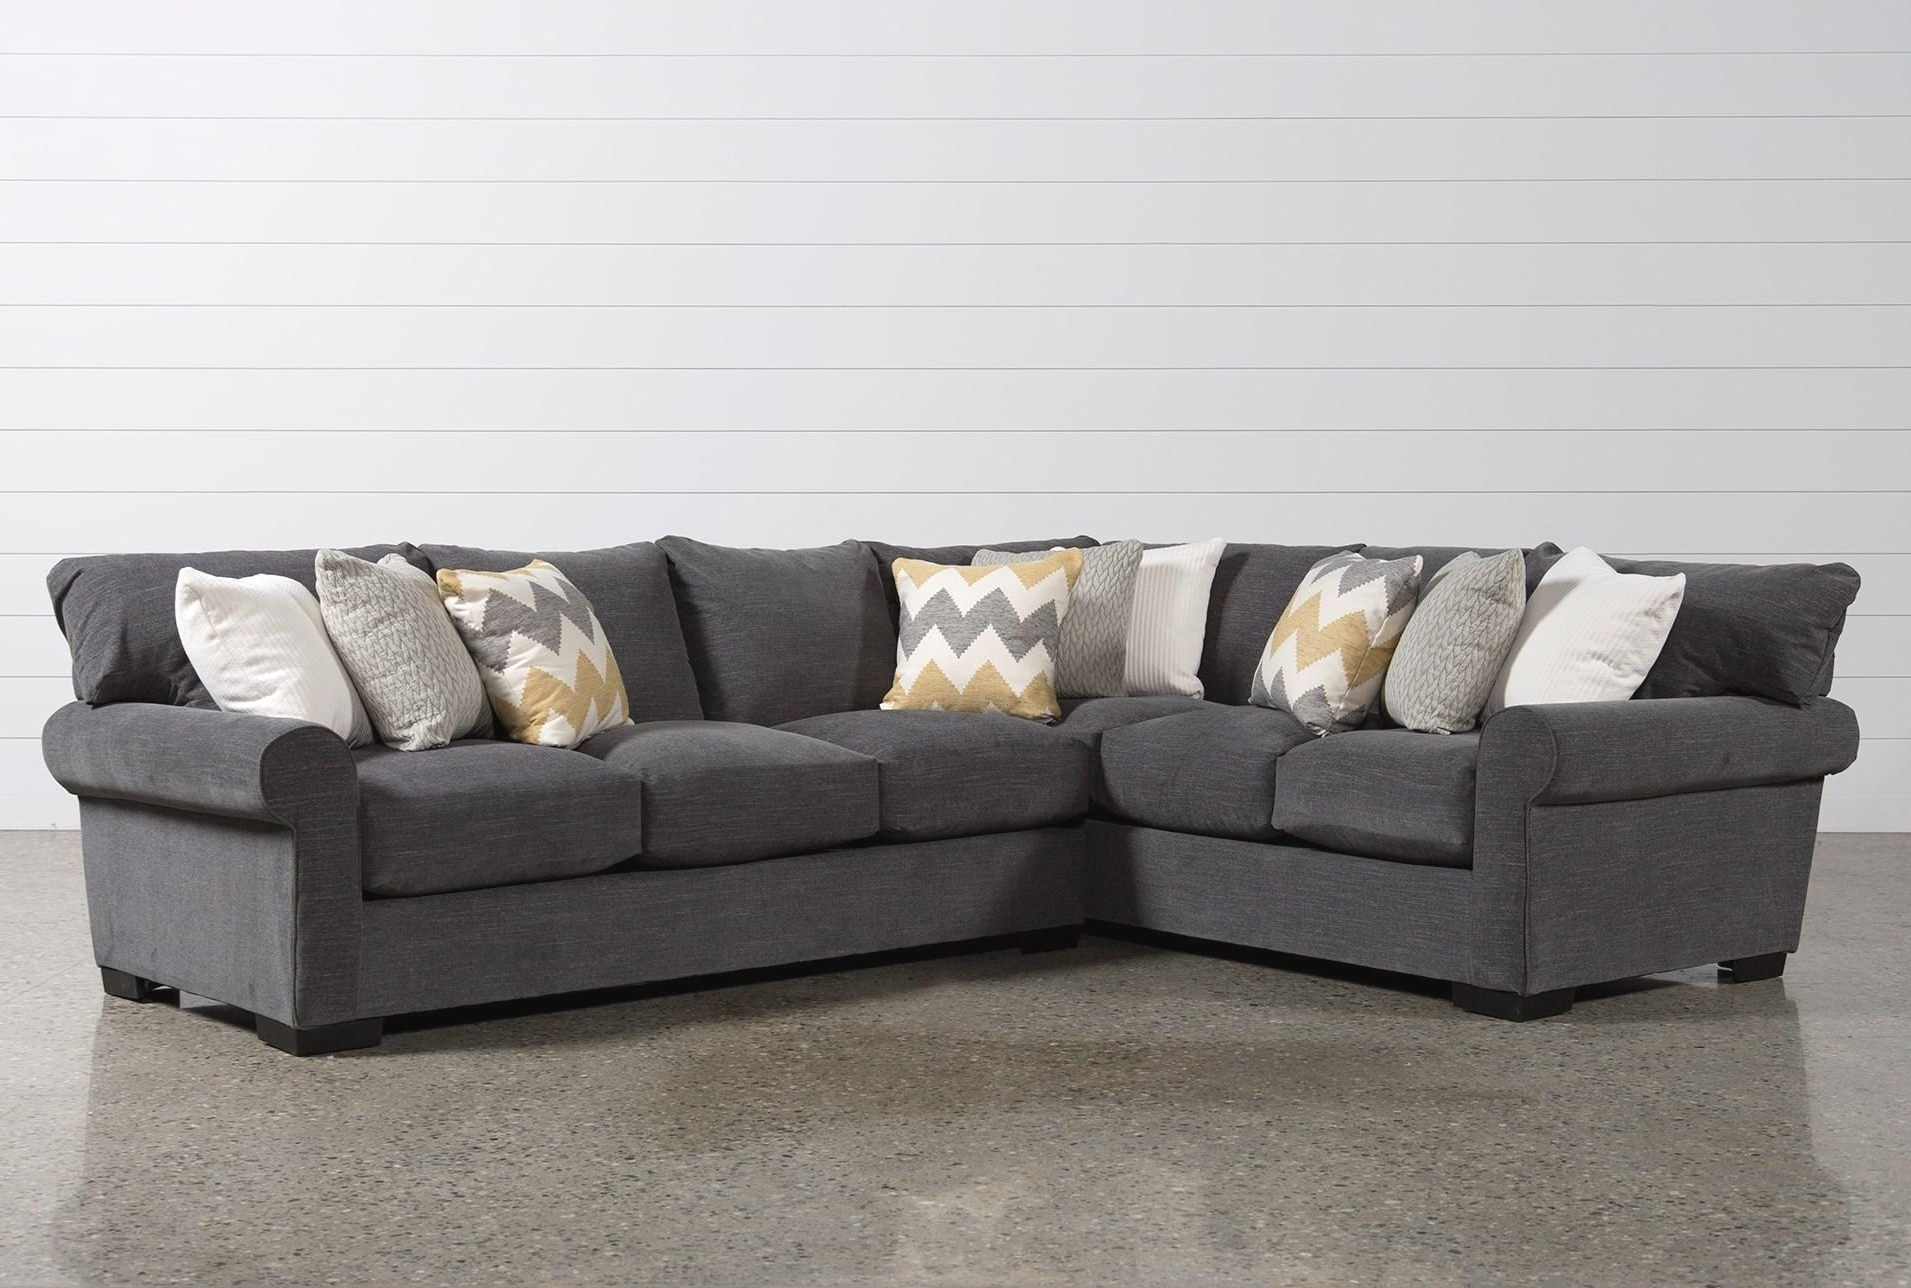 Latest Aquarius Light Grey 2 Piece Sectionals With Raf Chaise Intended For Old Corbin Piece Sectional W Raf Chaise Ideas Living Spaces Living (View 9 of 20)